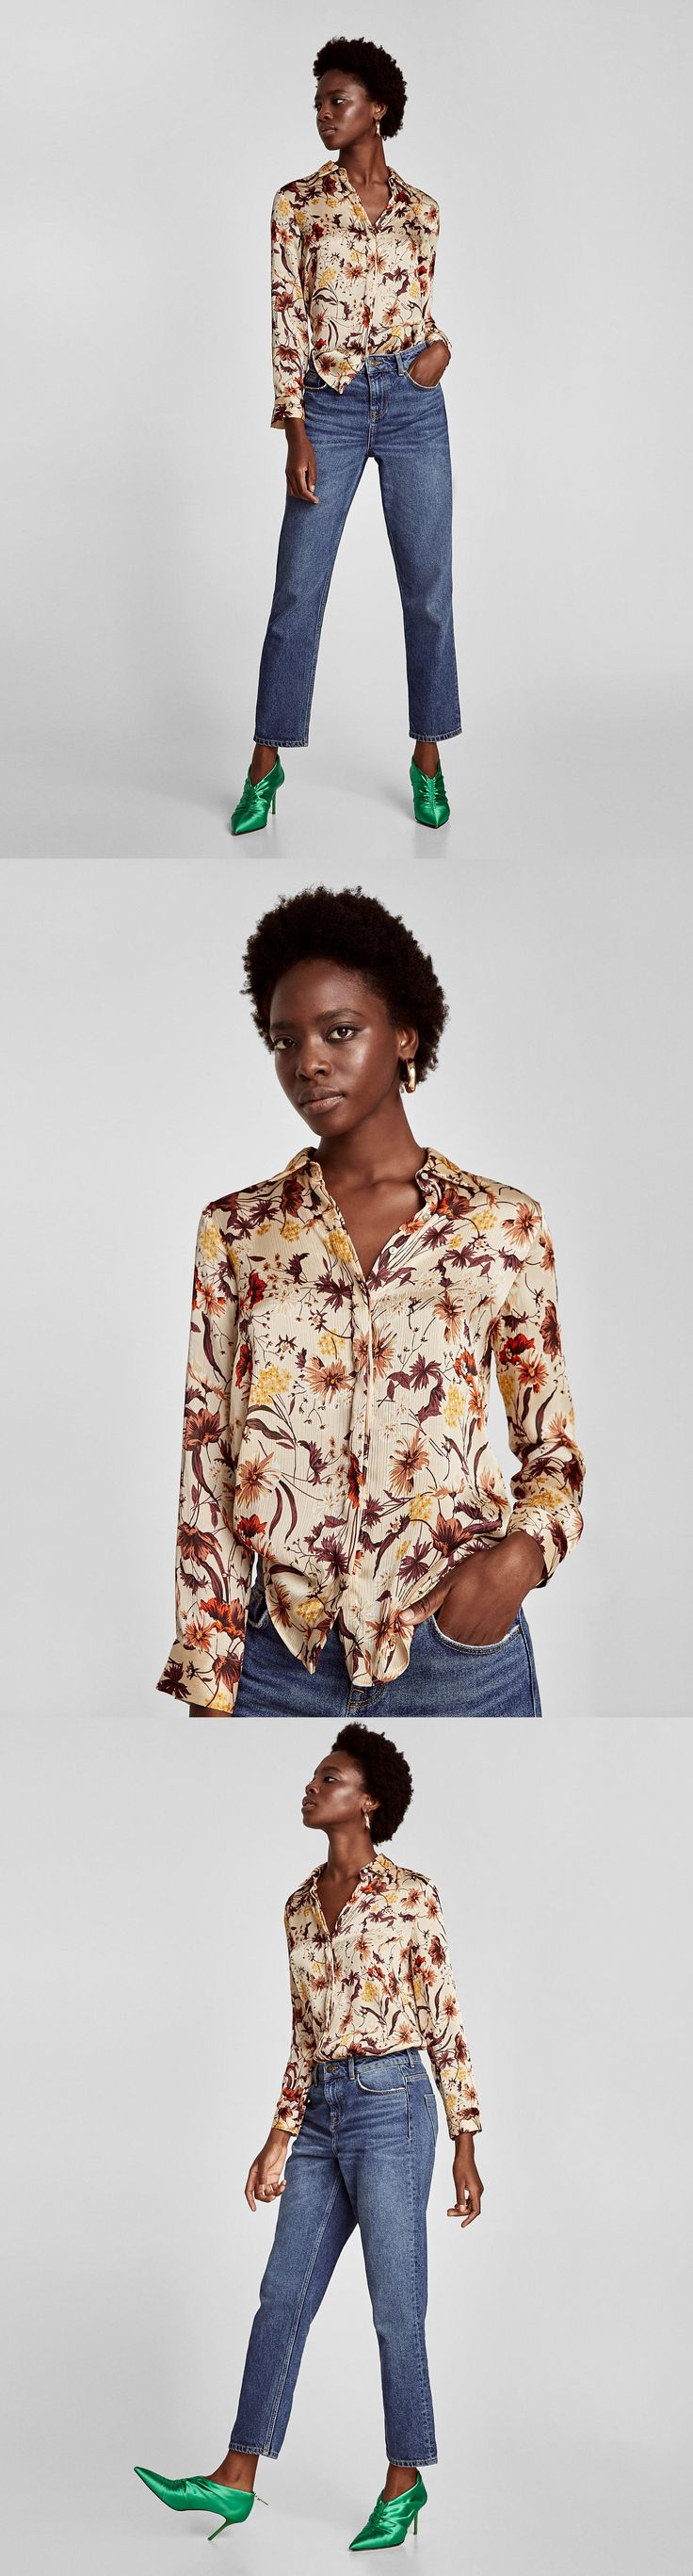 Printed Crepe Blouse // 39.90 USD // Zara // Flowing blouse with lapel collar, long cuffed sleeves and concealed button-up fastening in the front. HEIGHT OF MODEL: 178 cm. / 5′ 10″